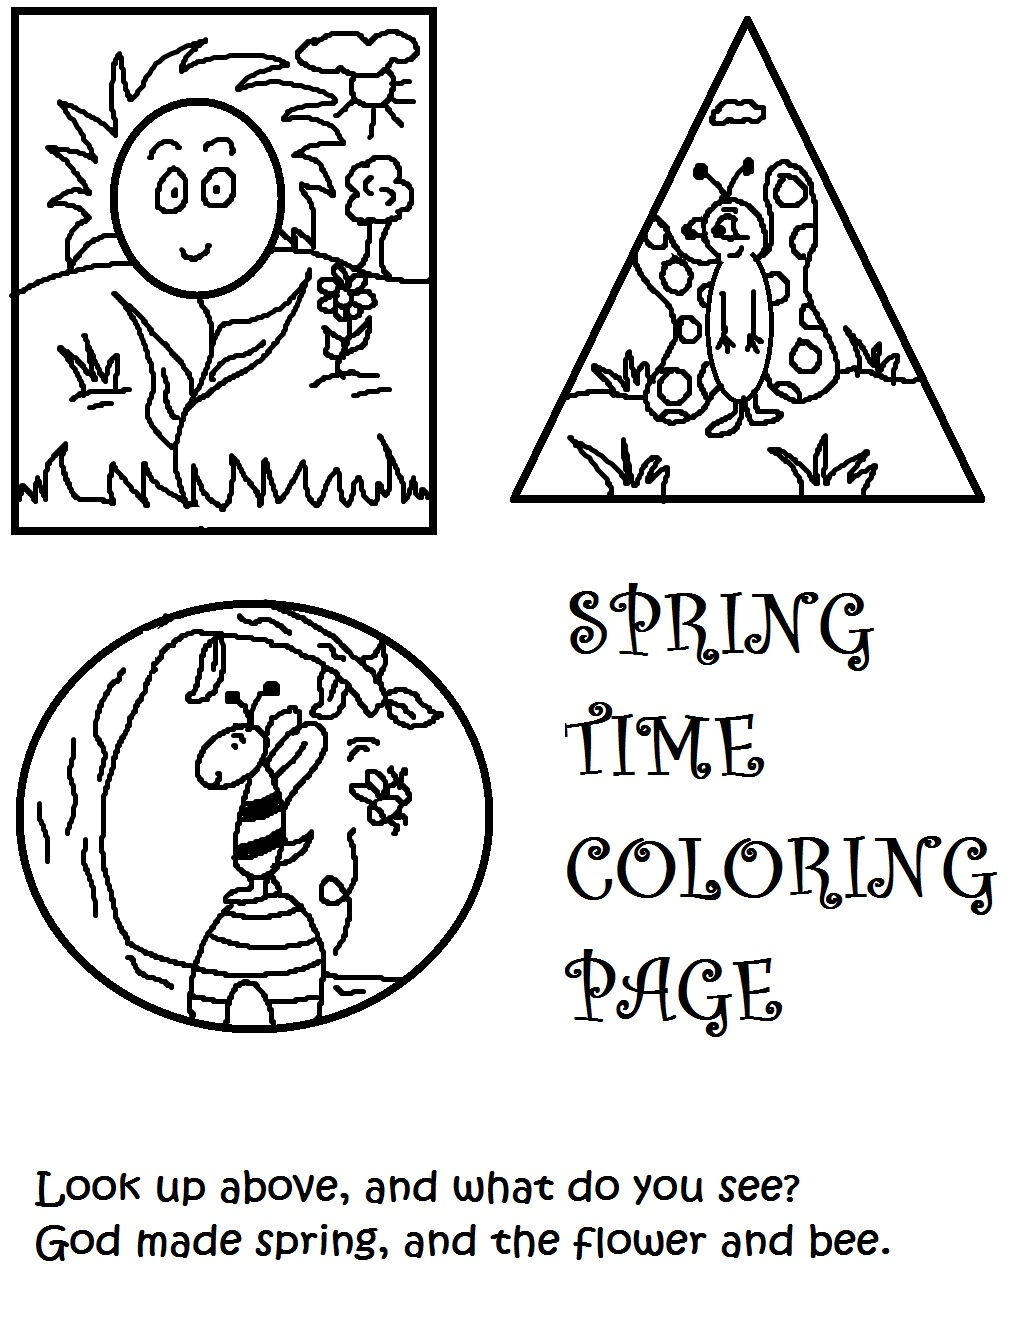 put god first coloring pages - photo#20